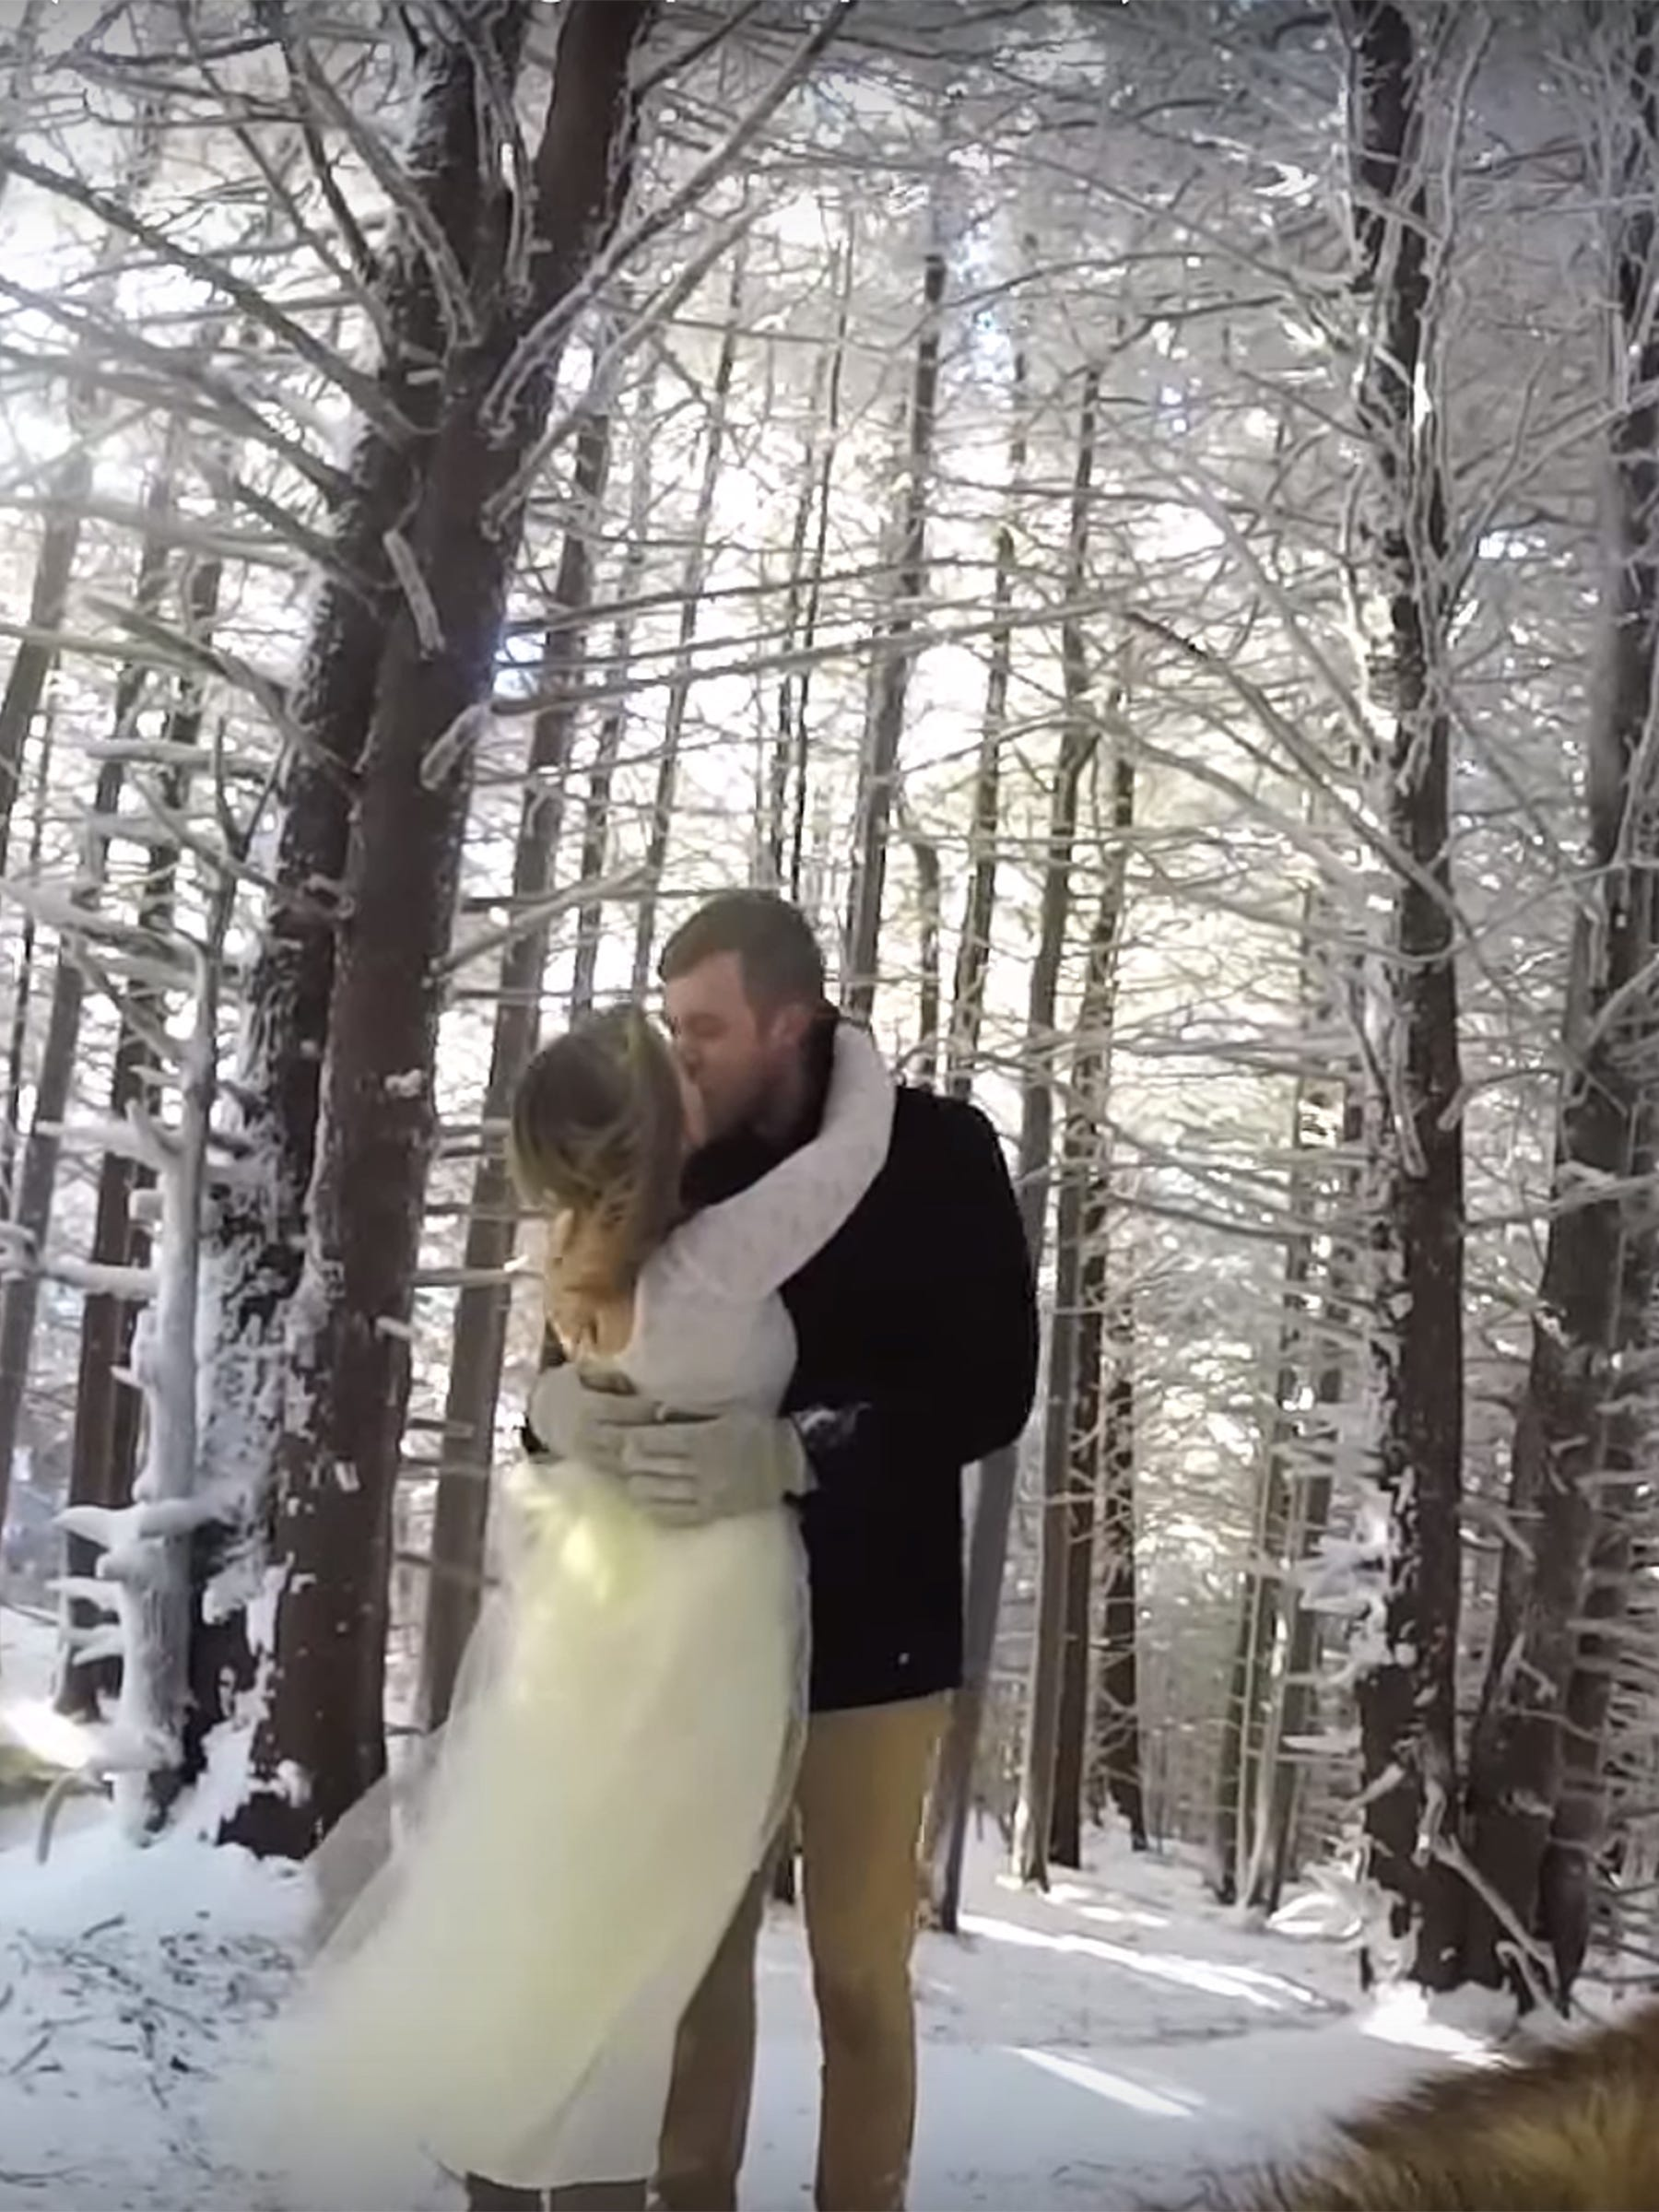 Wedding Dog GoPro Camera Video - Couple let their dog film their snowy wedding day and the result was magical